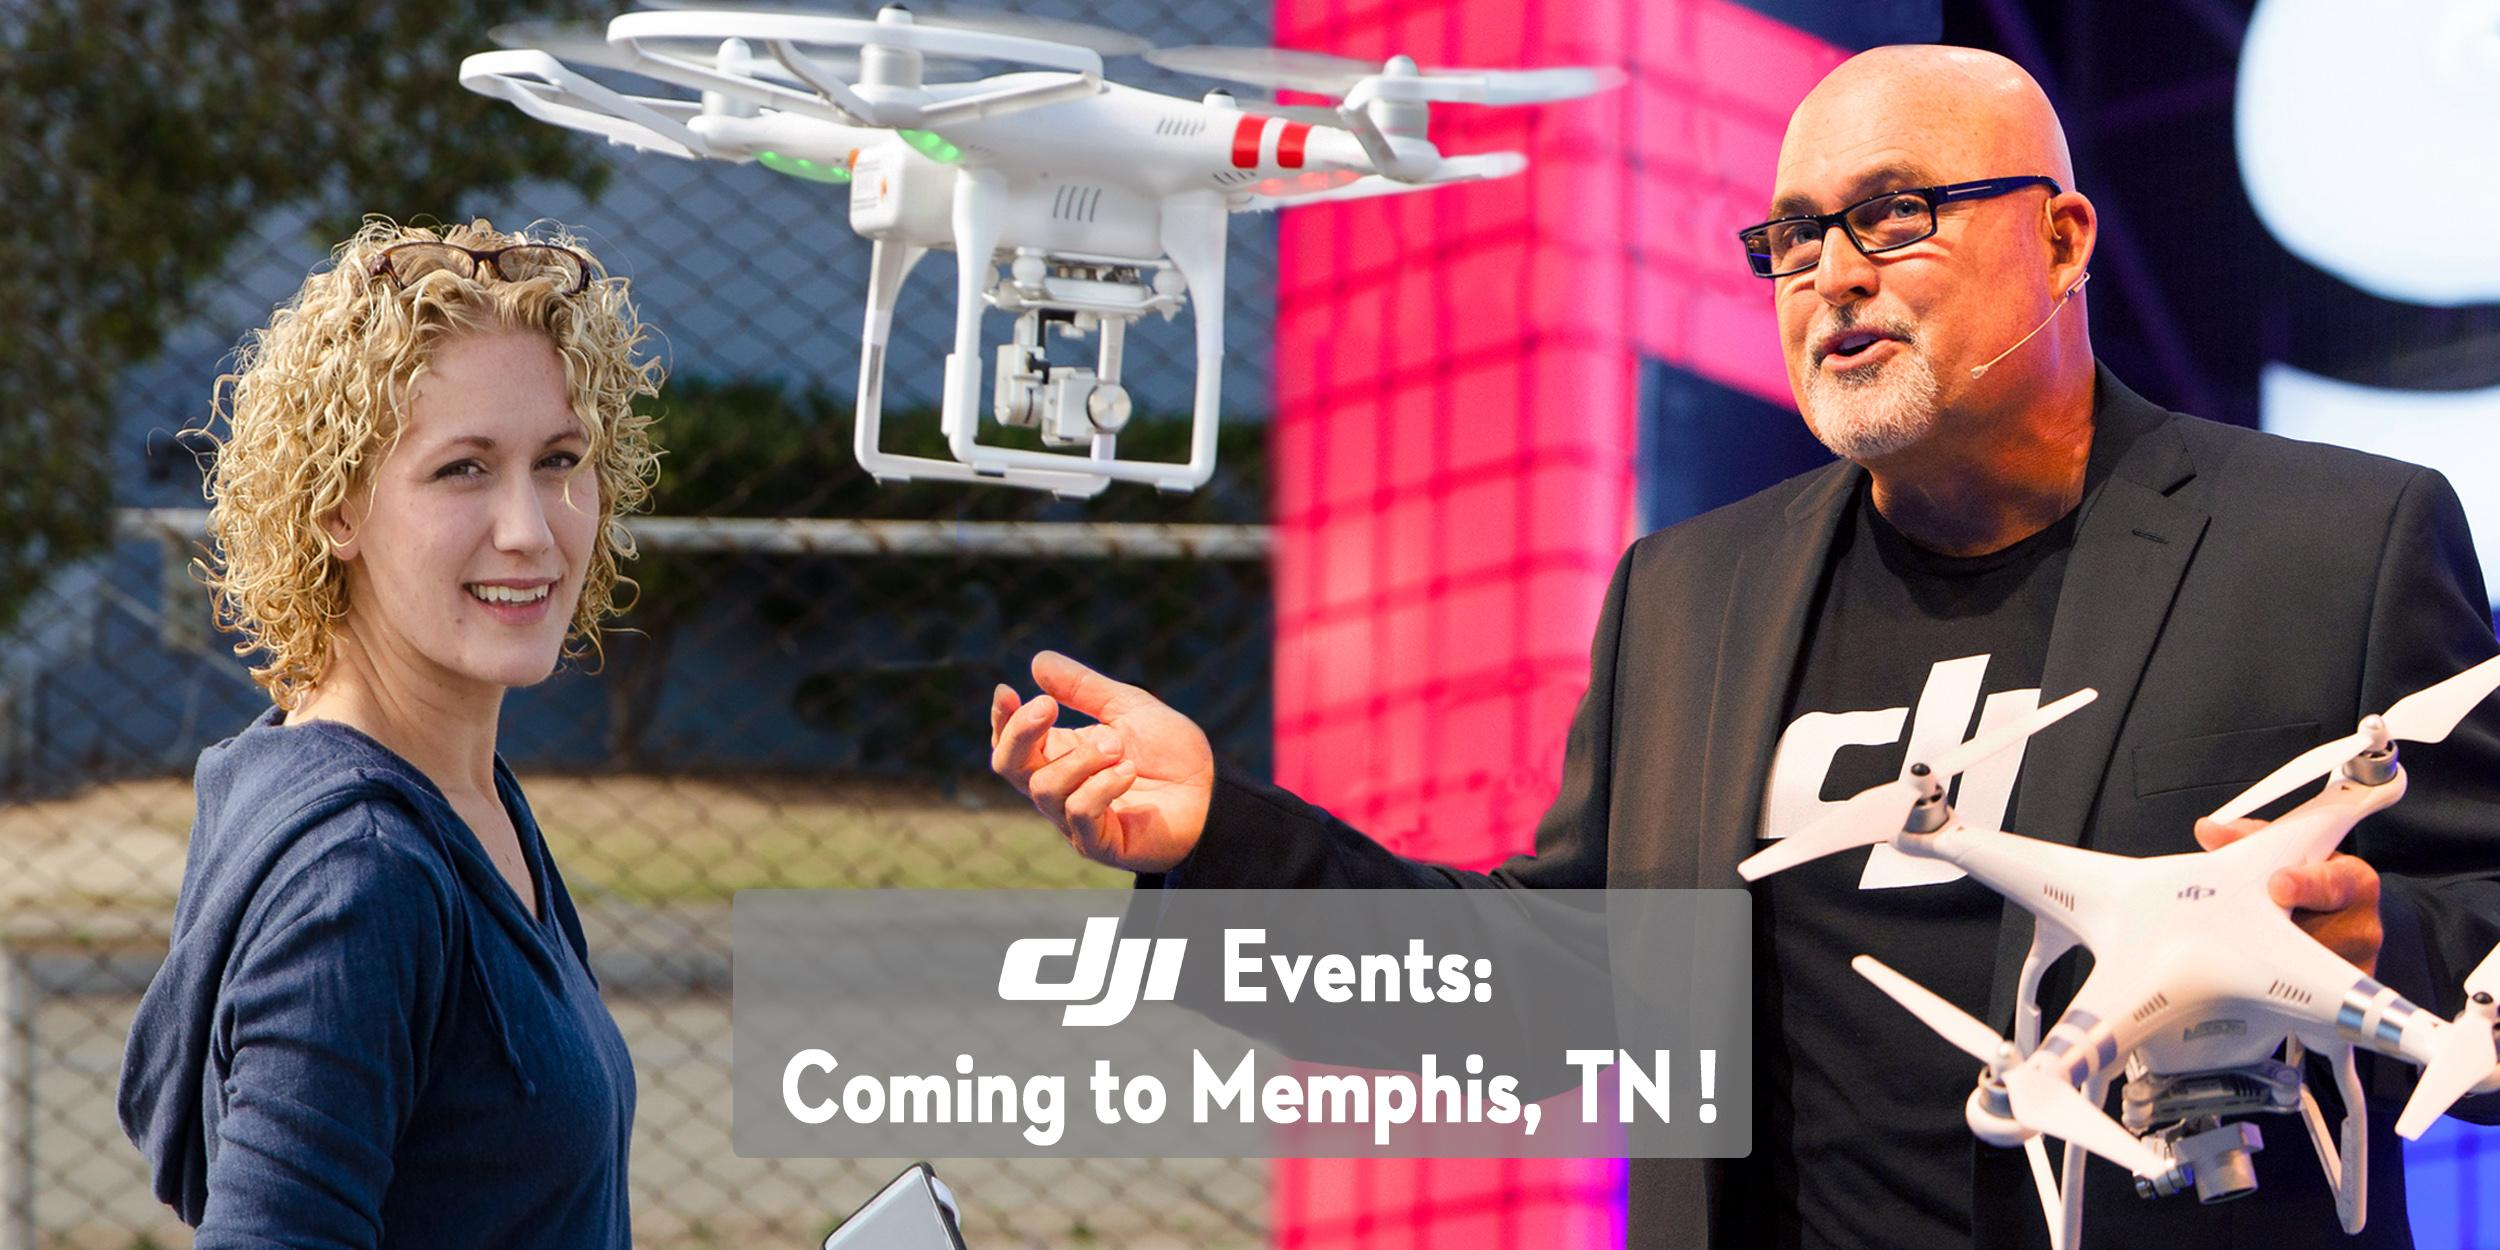 DJI Aerial Photo Academy – on Tour in Memphis, TN!